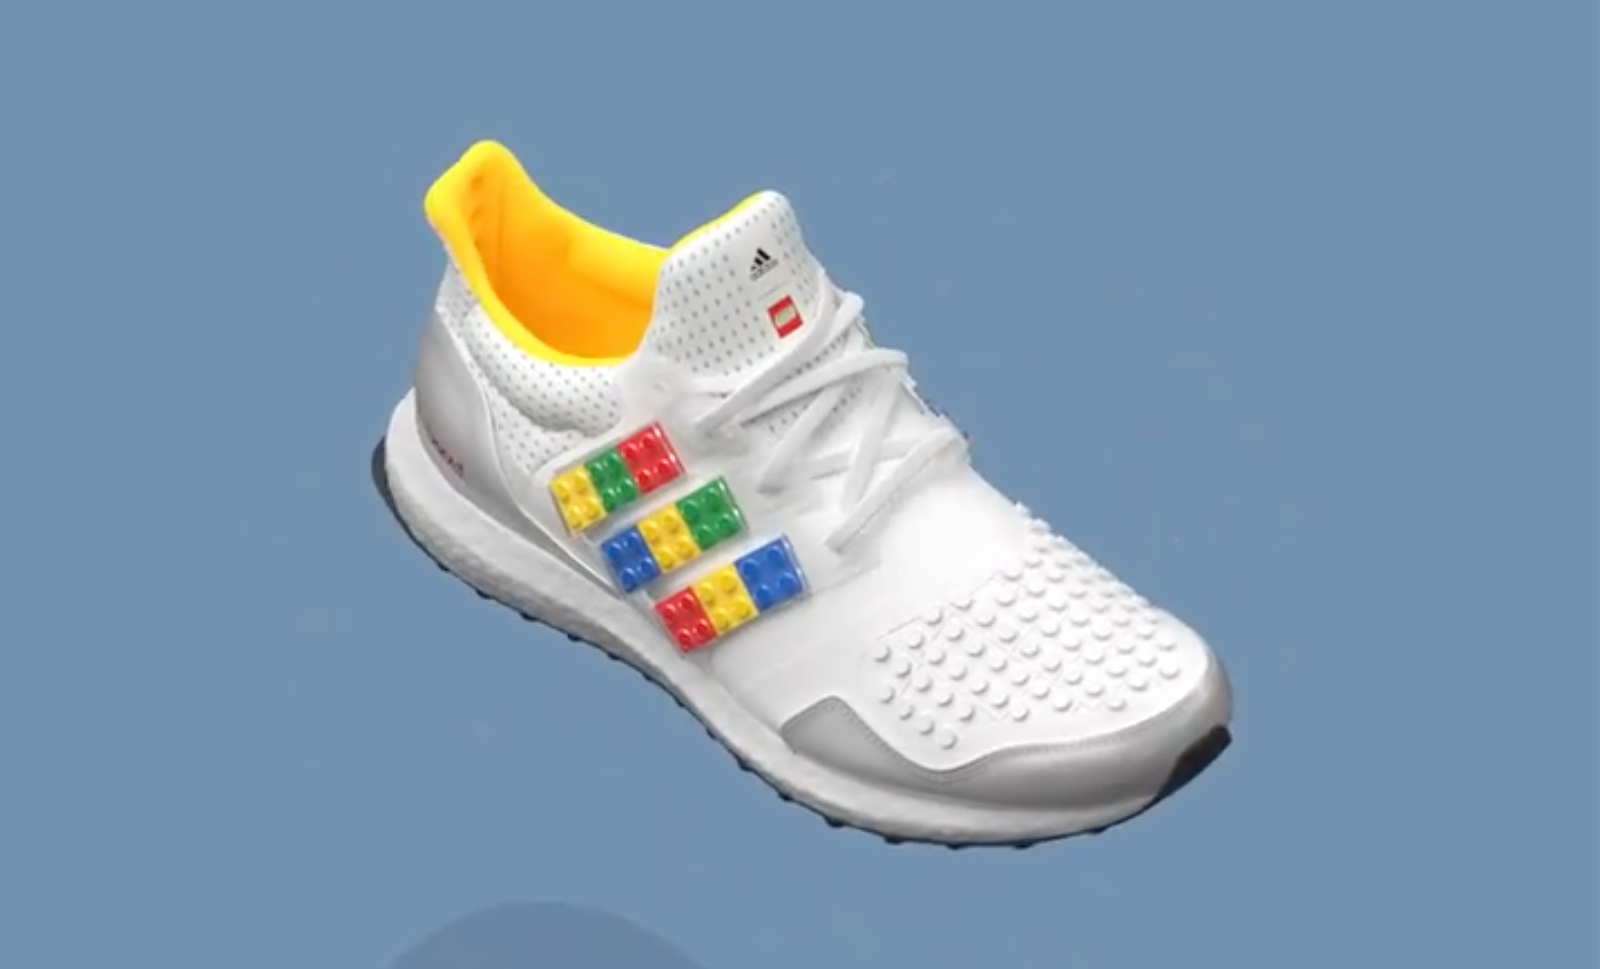 New Adidas shoes can be customized with Lego pieces - CNET